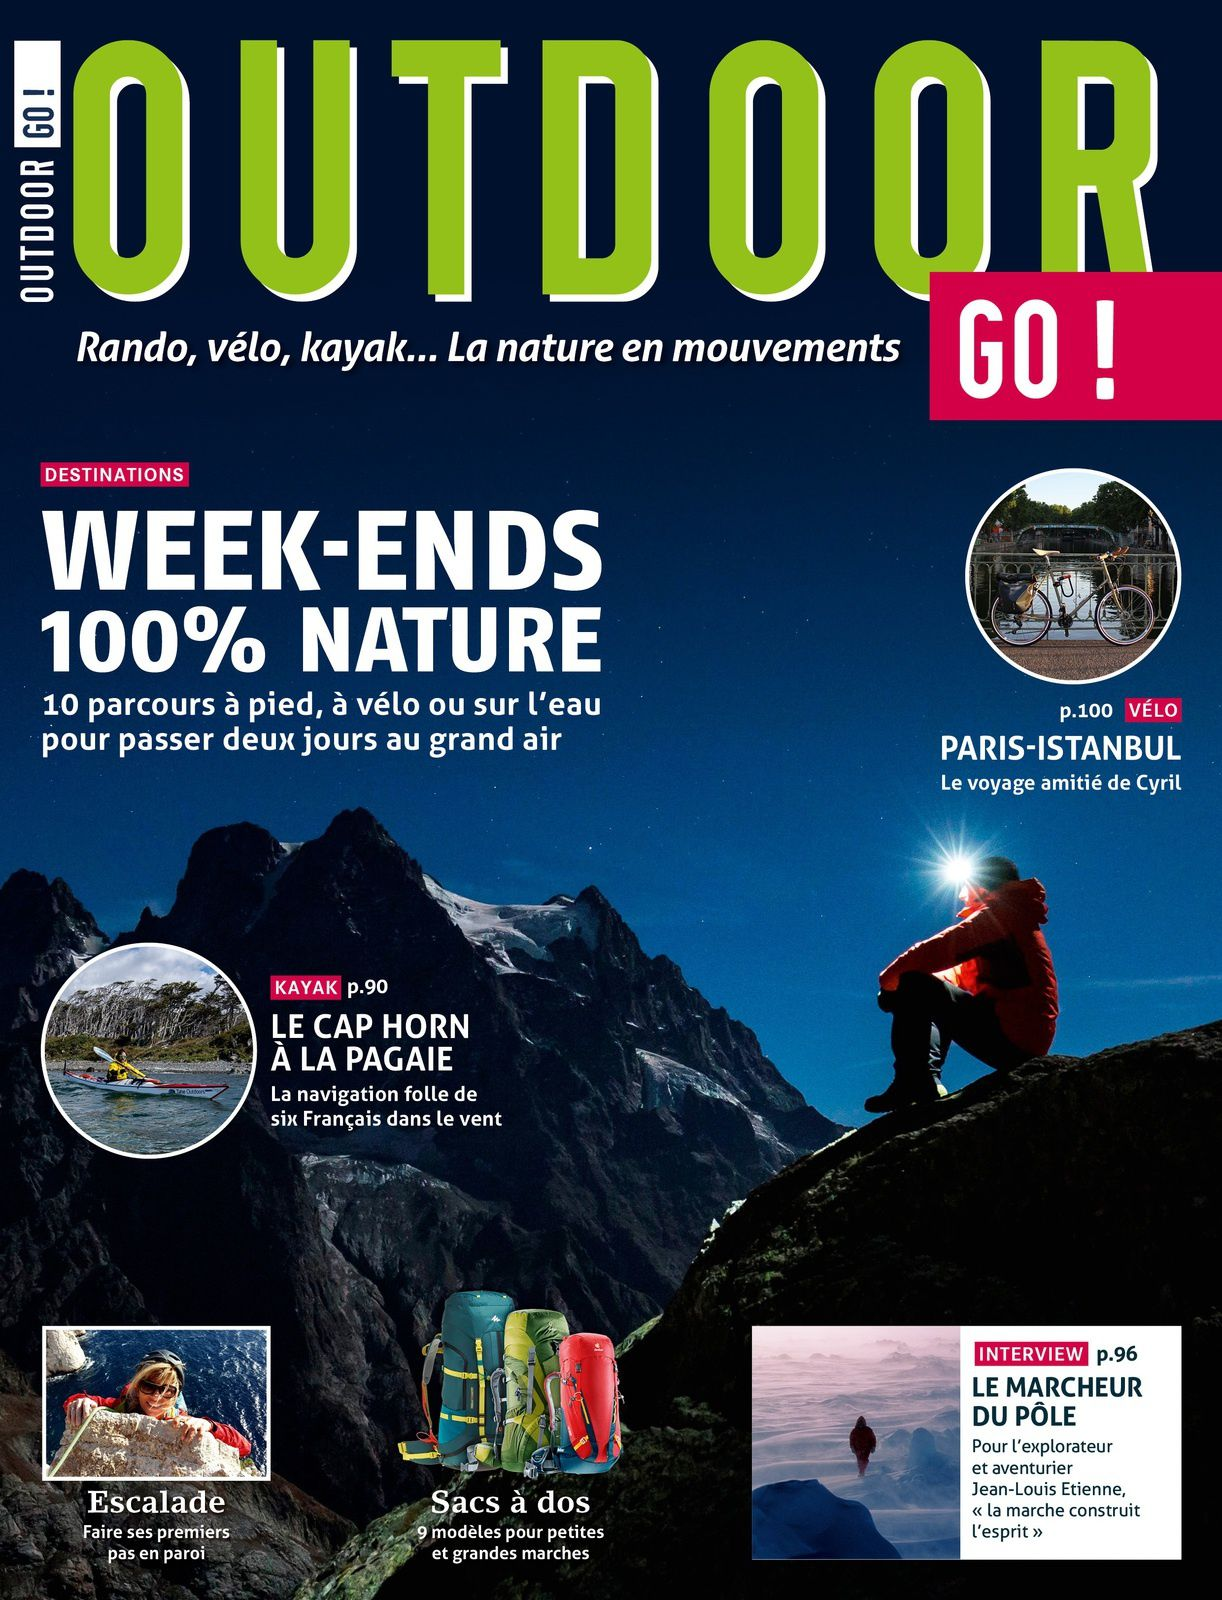 Merci Outdoor